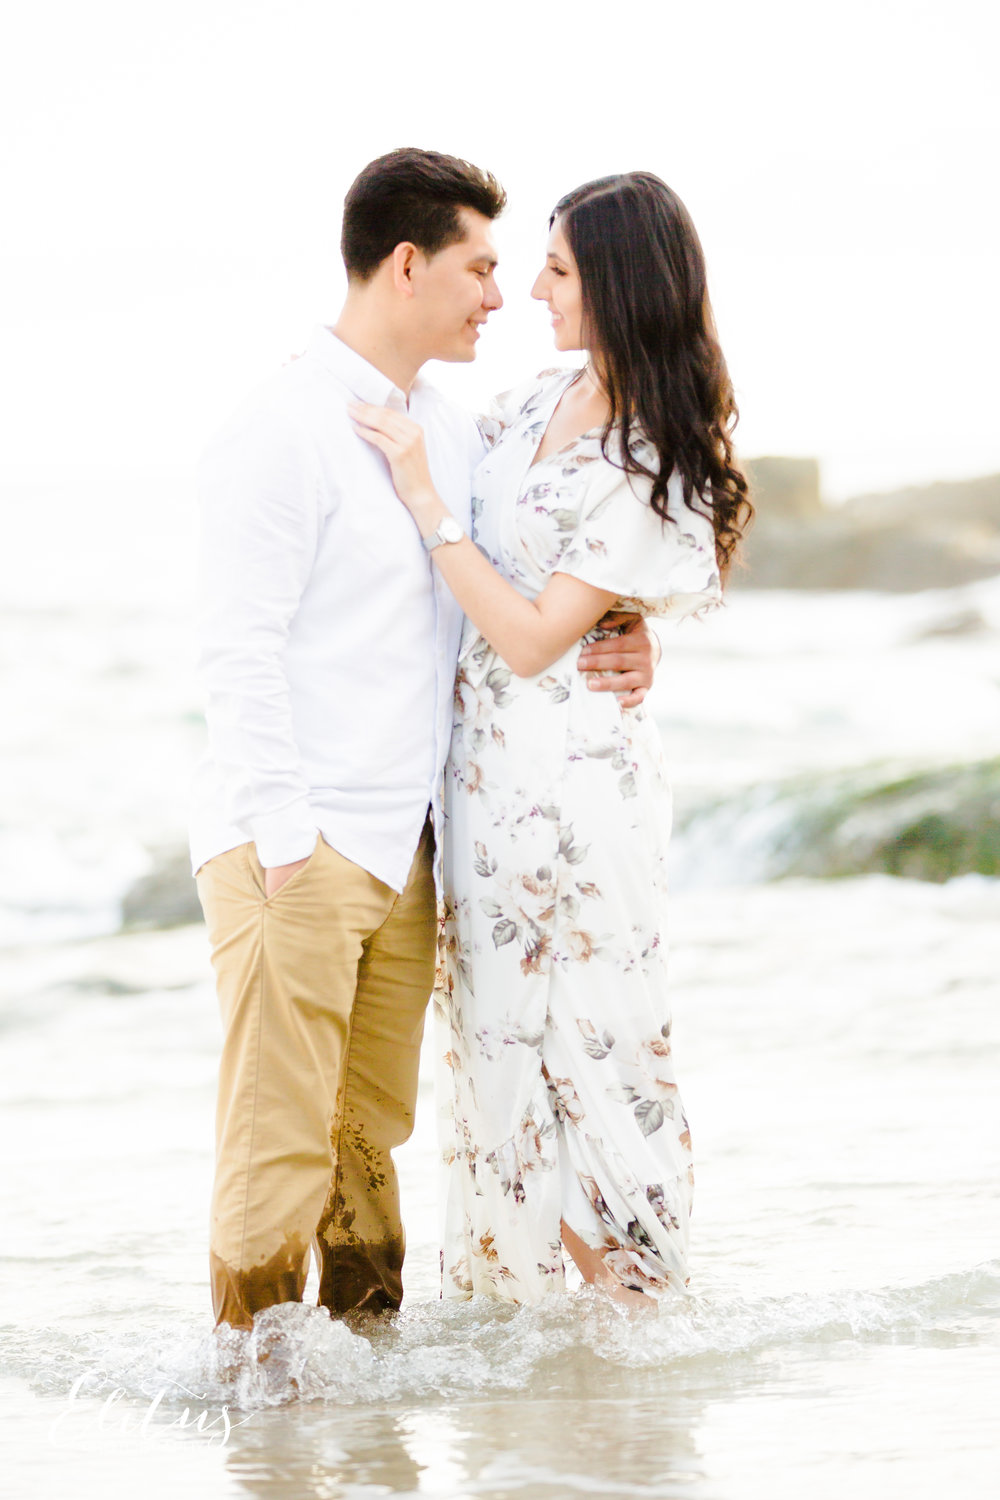 elitus-photograpy-laguna-beach-marisol-benito-engagement (111 of 115).jpg